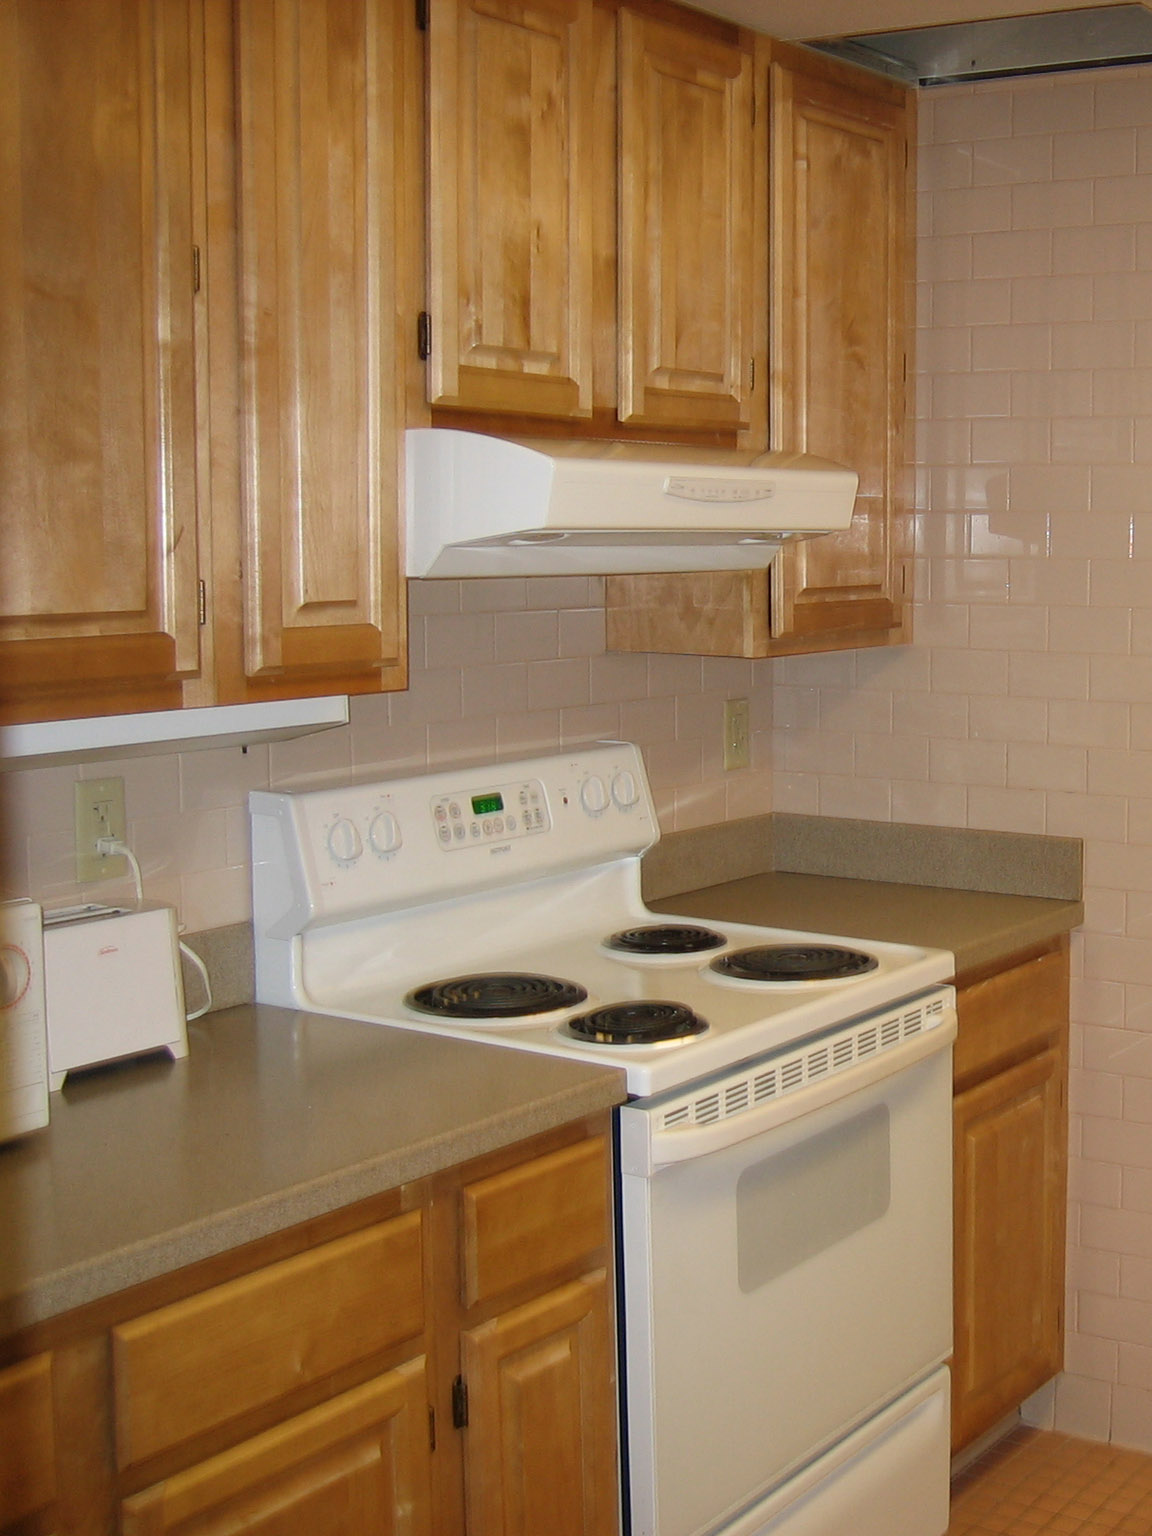 kitchen cabinets int pic.jpg